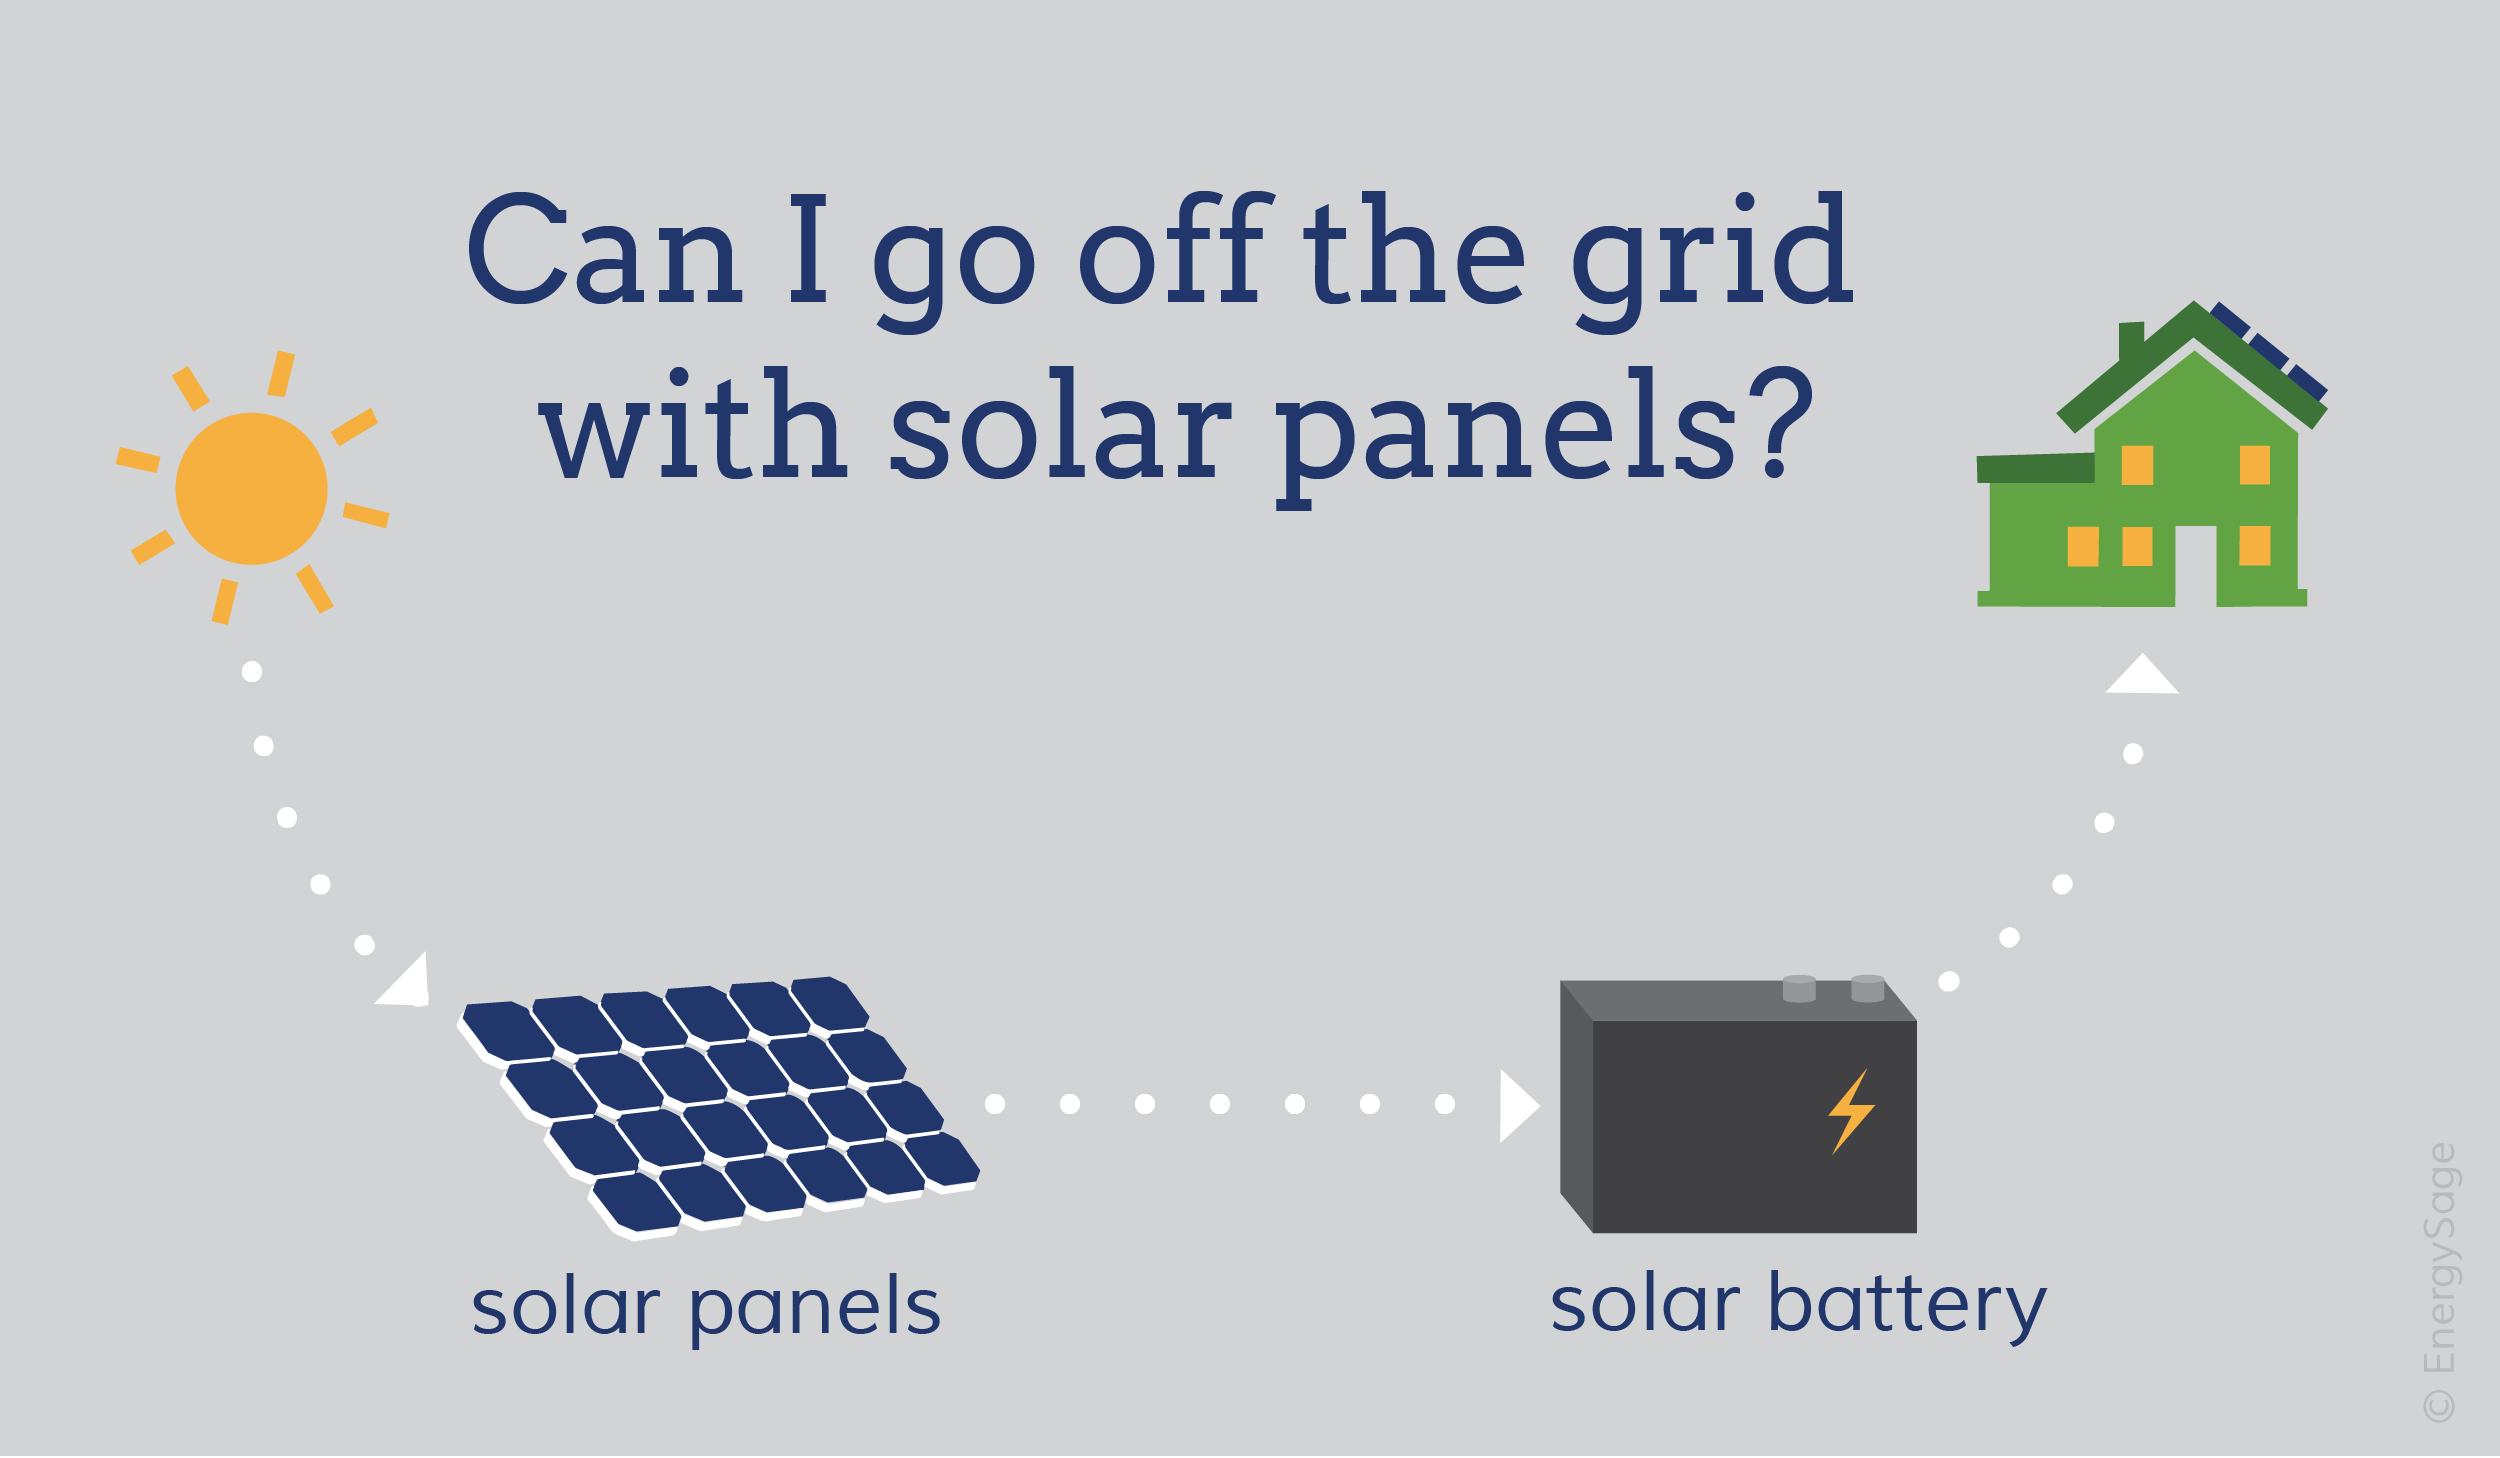 Going off the grid with solar batteries